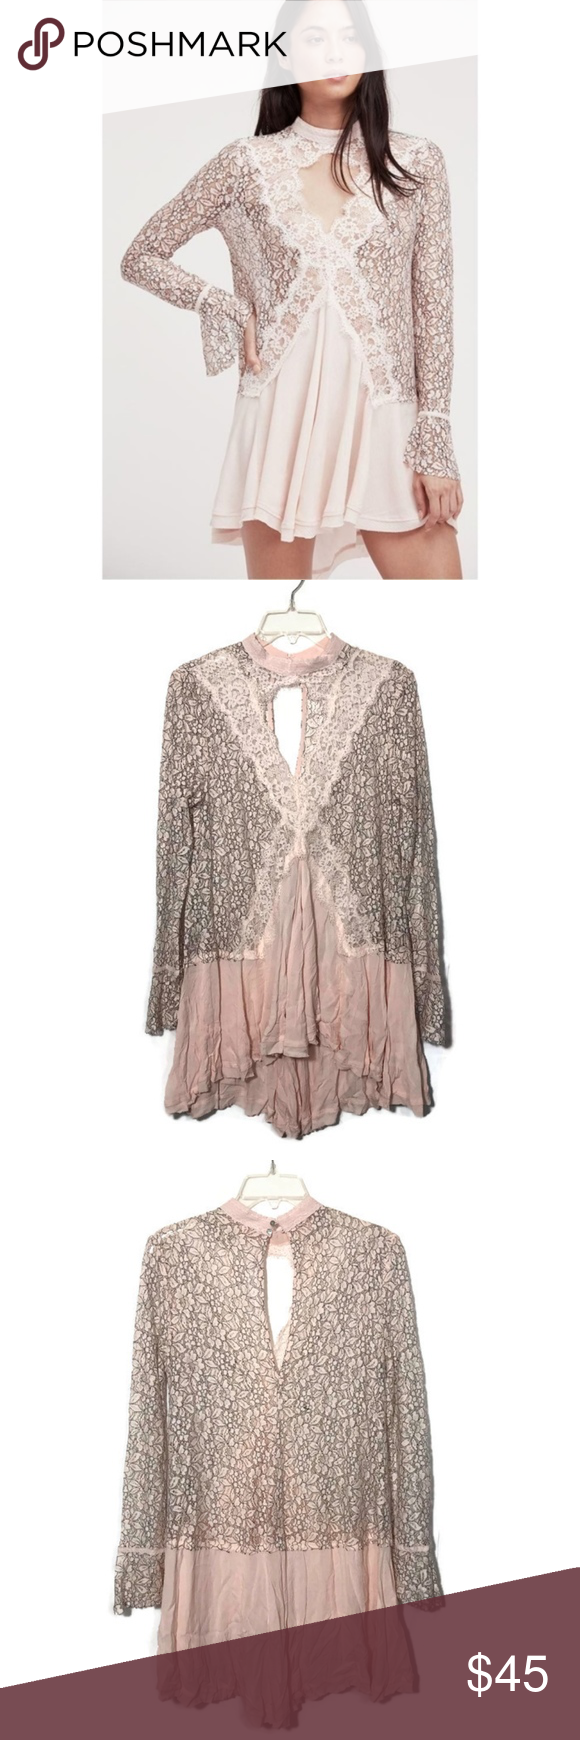 8679b92473d Free People Tell Tale Lace Pale Pink Tunic Dress Free People Womens Sz M  Tell Tale Pale Pink Lace Mock Neck Boho Tunic Dress FPM-111018-(10)-X In  great ...